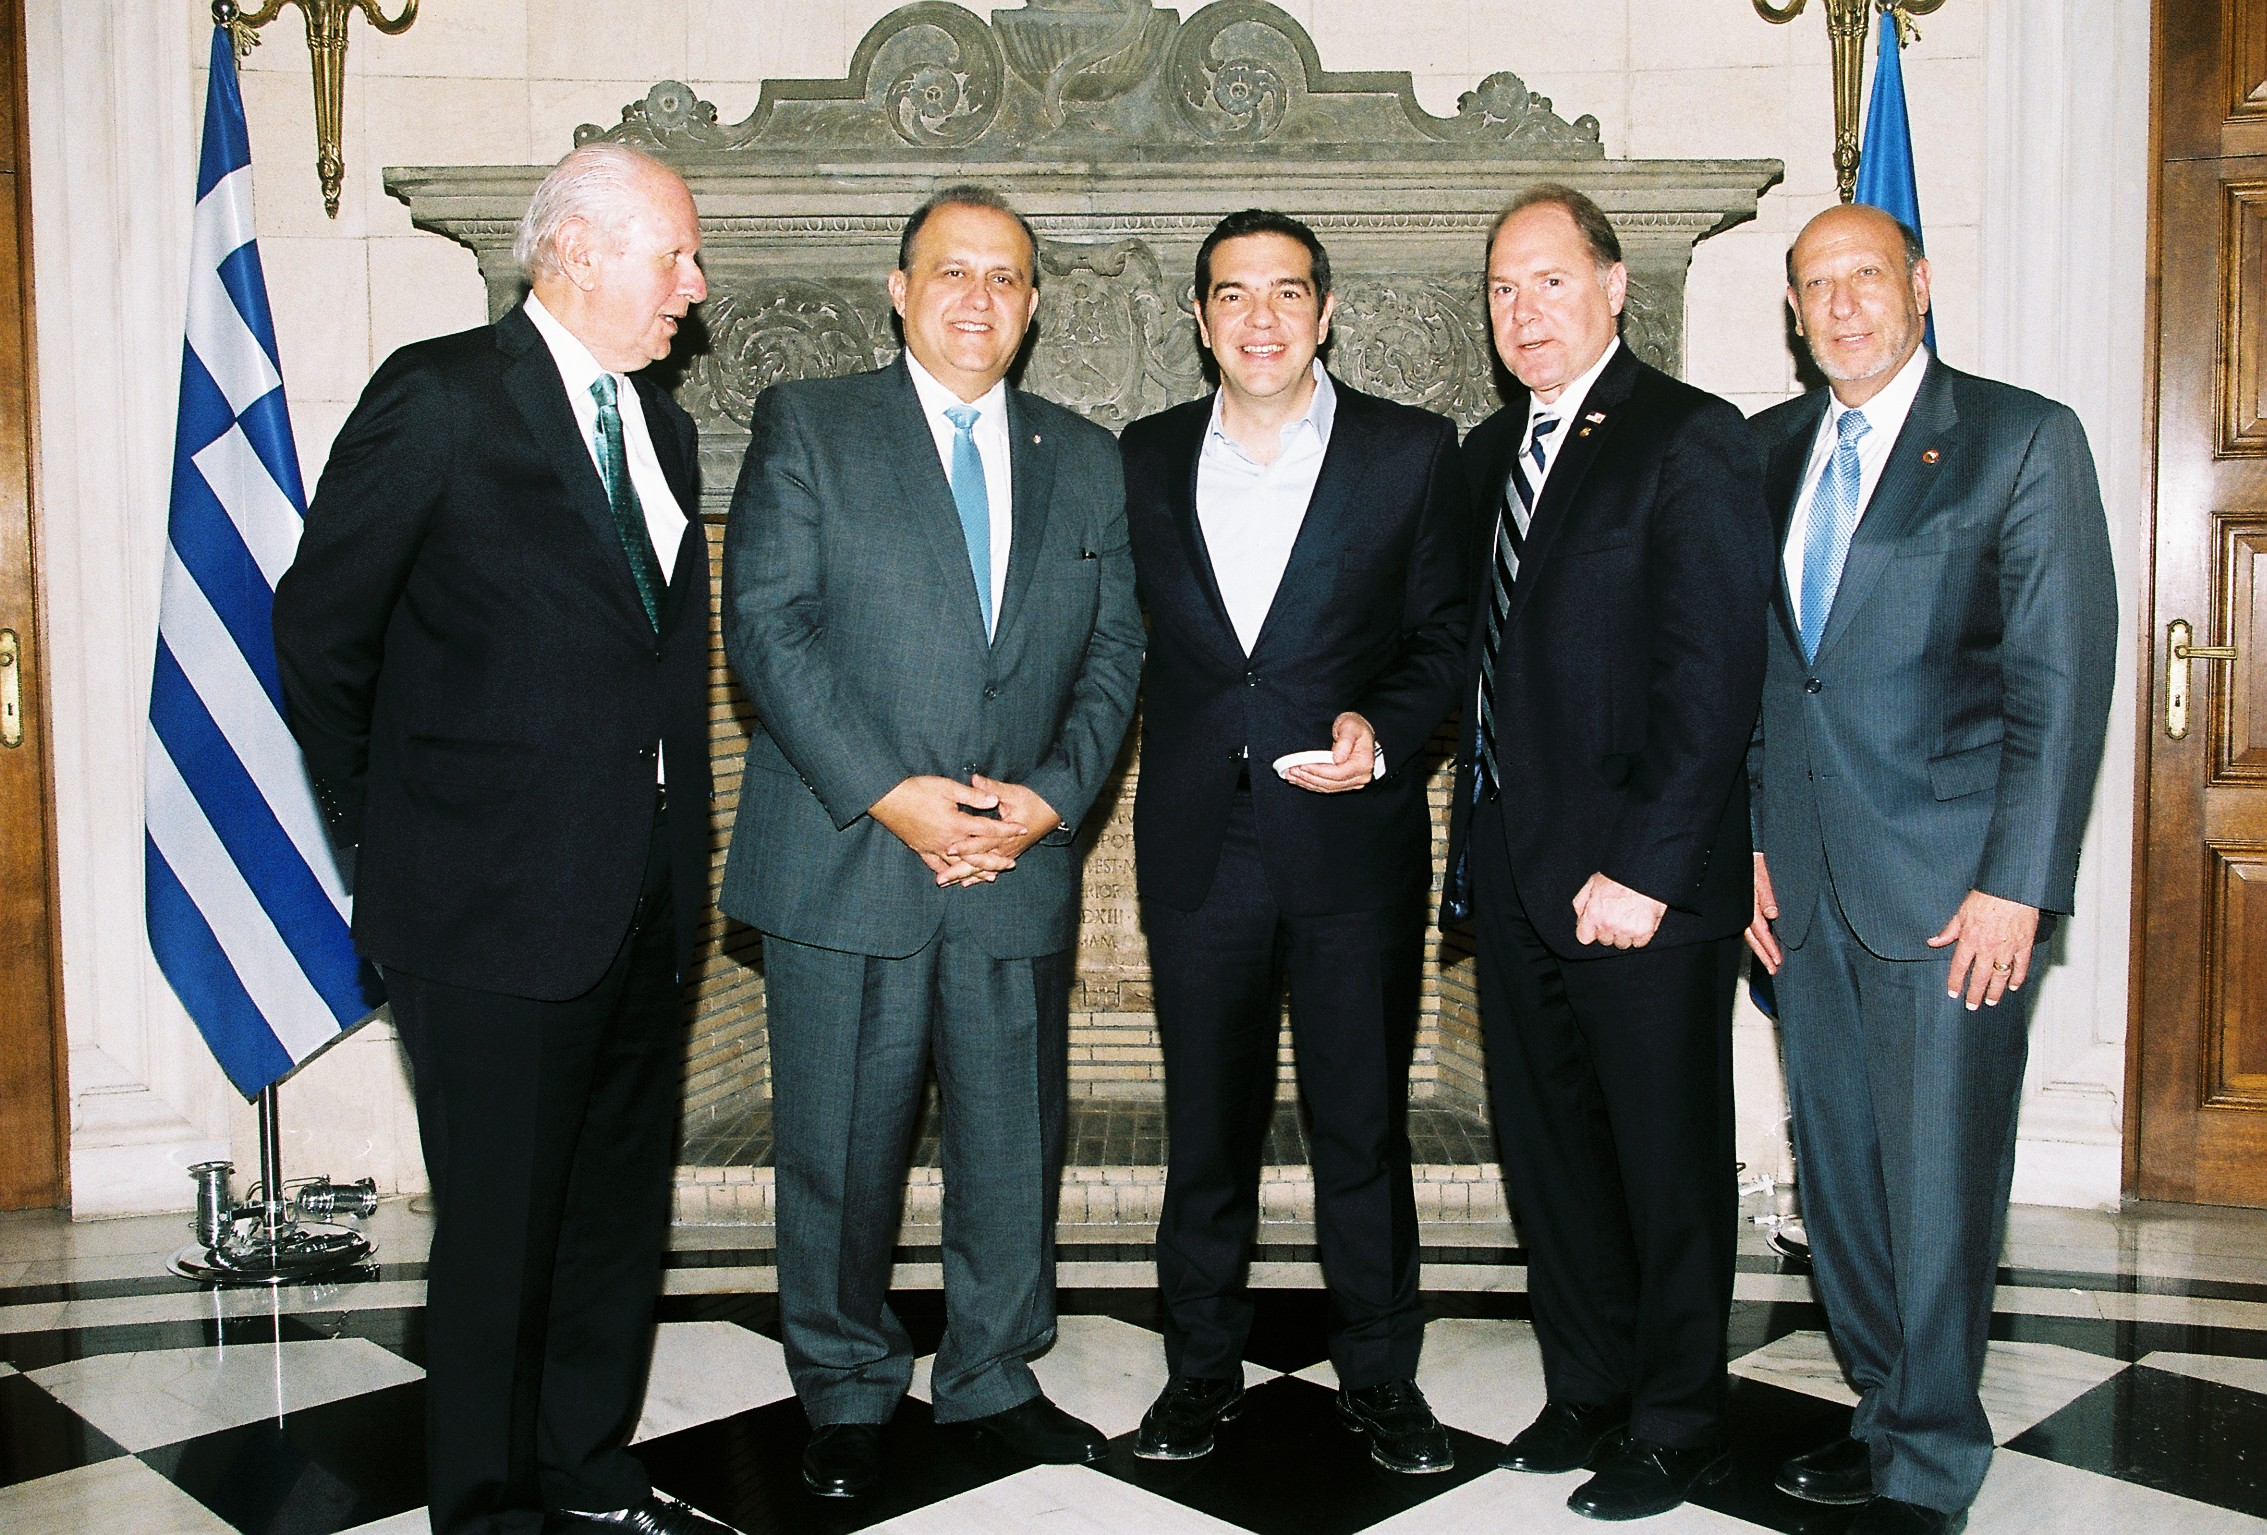 (L-R) Delegation Heads Stephen Greenberg, Chairman of the Conference of Presidents of Major American Jewish Organizations; Nick Larigakis, President of AHI; Prime Minister Alexis Tsipras, Prime Minister of Greece; Carl R. Hollister, Supreme President of AHEPA; Gary P. Saltzman, International President of B'nai B'rith International.